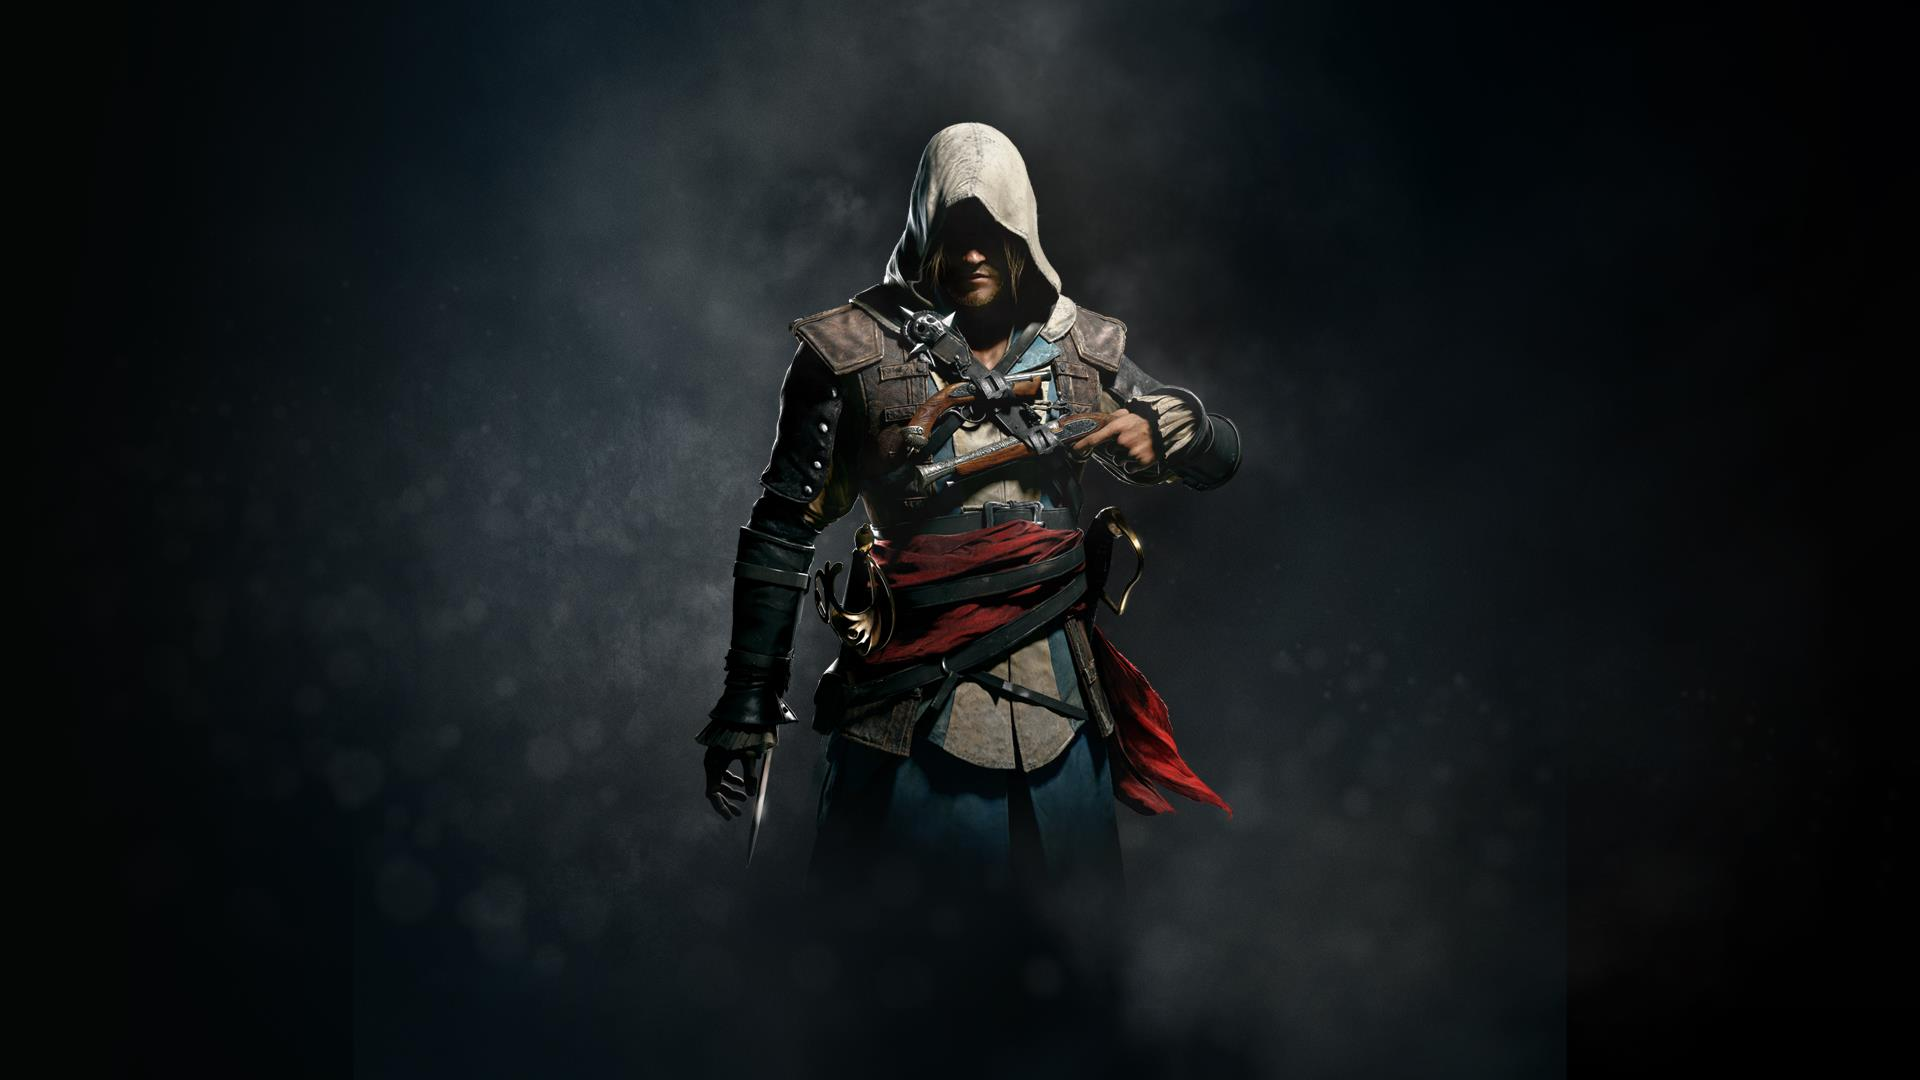 Siren Song in Assassin's Creed IV: Black Flag